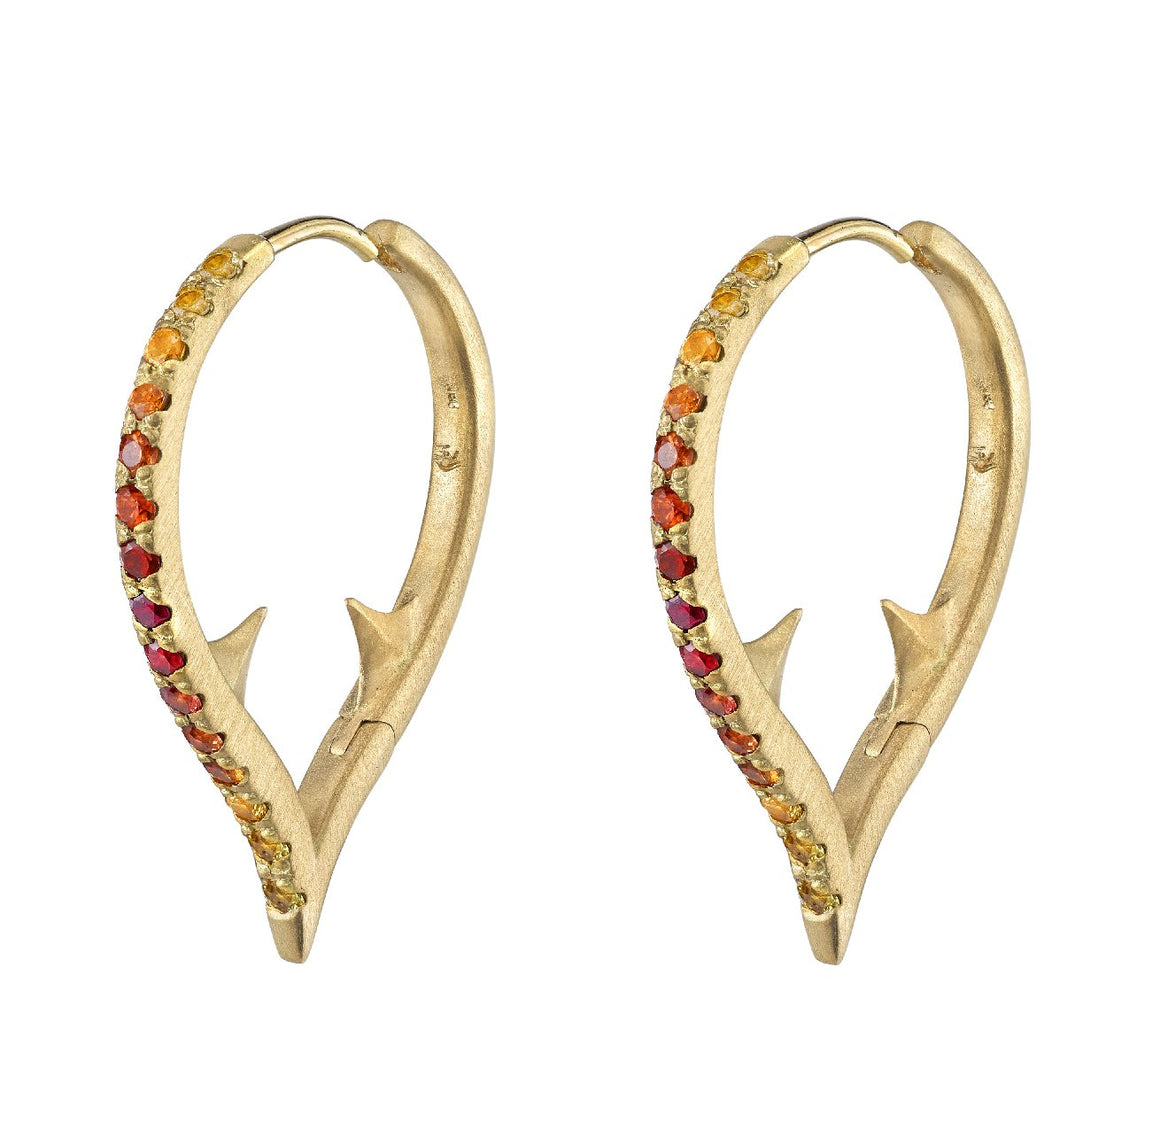 Ombré Altruist Hoop Earrings- Sunset